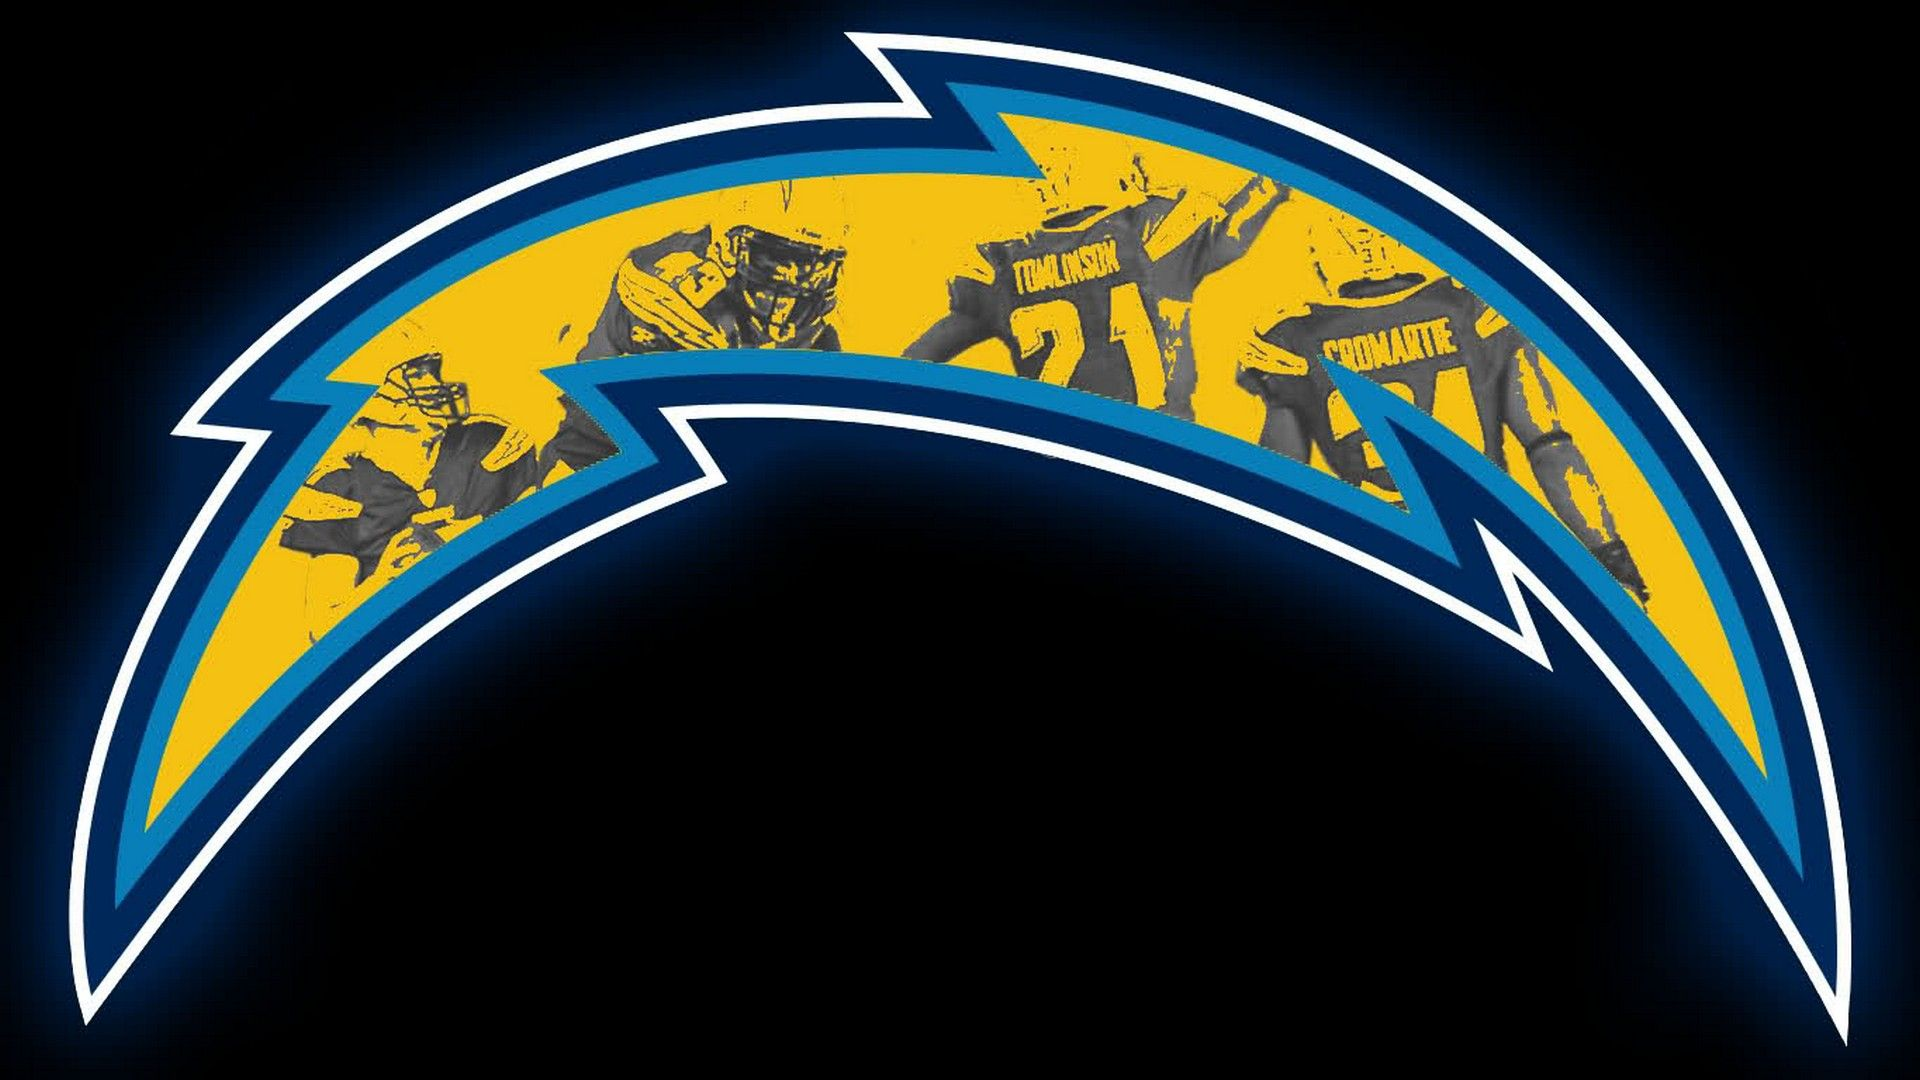 Los Angeles Chargers Wallpaper Hd 2020 Nfl Football Wallpapers San Diego Chargers Wallpaper Iphone Wallpaper Los Angeles Los Angeles Chargers